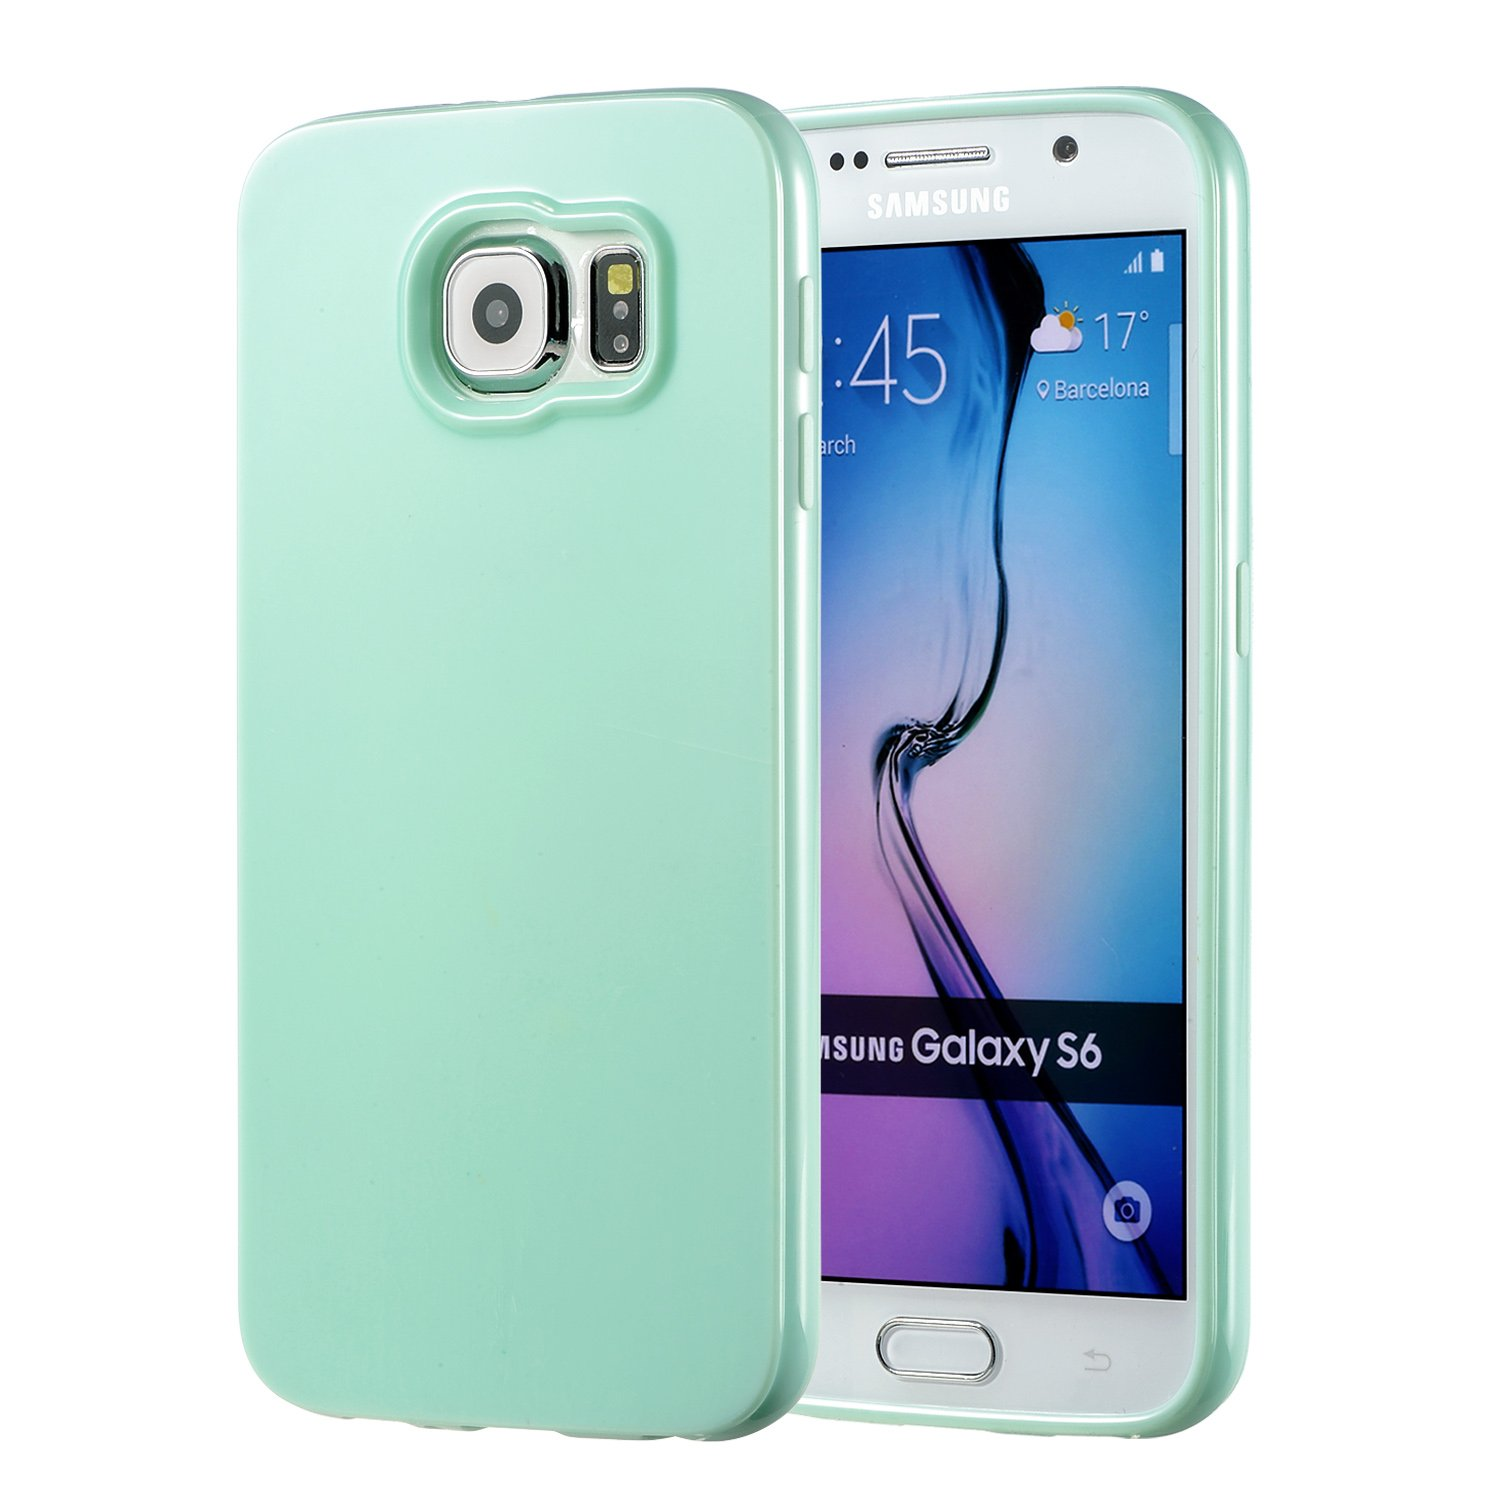 amazon com galaxy s6 mint case, technext020 galaxy s6 case siliconeamazon com galaxy s6 mint case, technext020 galaxy s6 case silicone protective back cover slim fit samsung galaxy s6 bumper cell phones \u0026 accessories